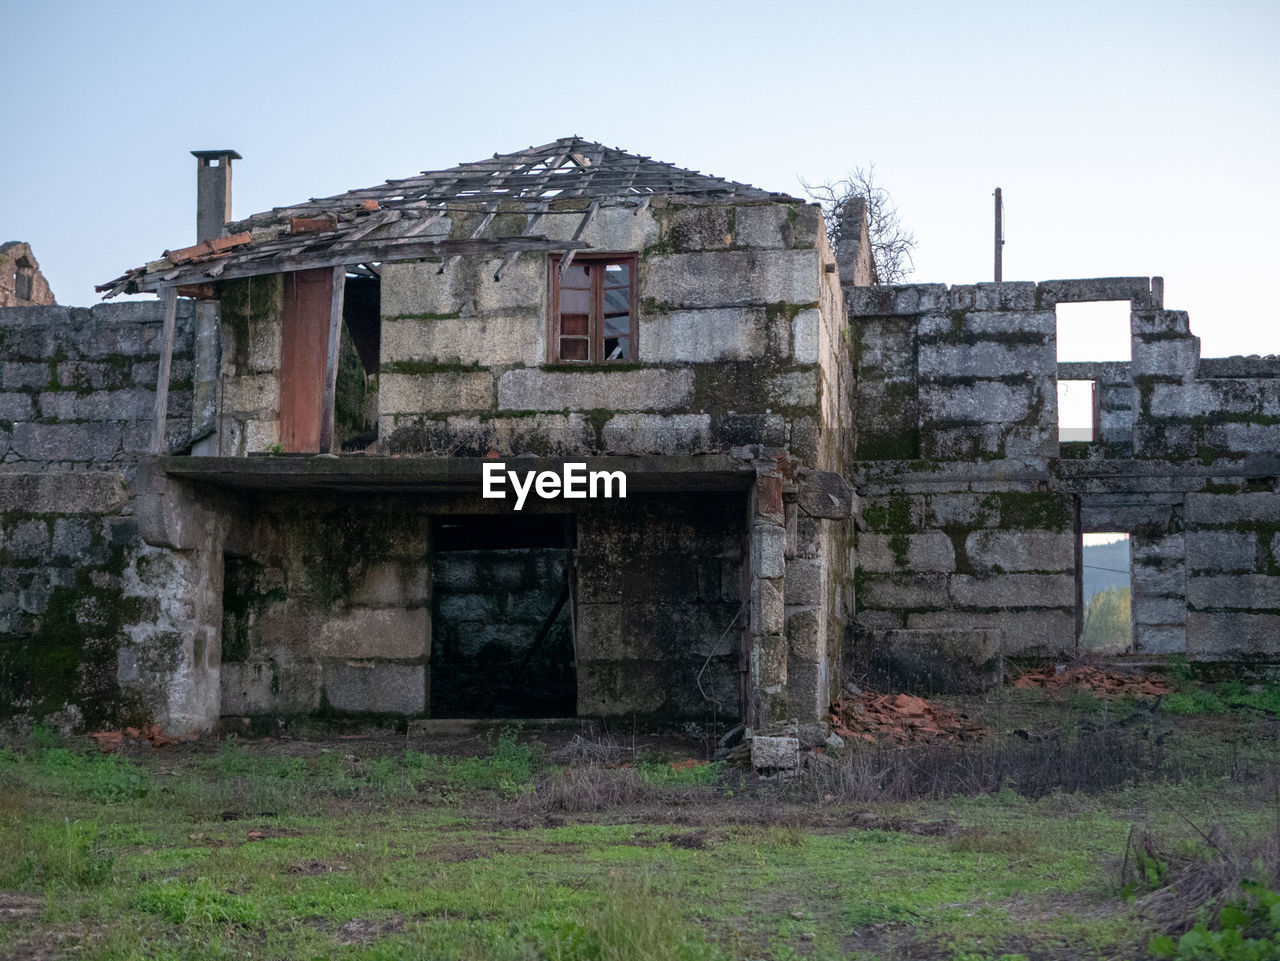 architecture, built structure, building exterior, abandoned, sky, building, nature, old, day, damaged, no people, clear sky, plant, obsolete, run-down, weathered, house, grass, field, outdoors, deterioration, stone wall, ruined